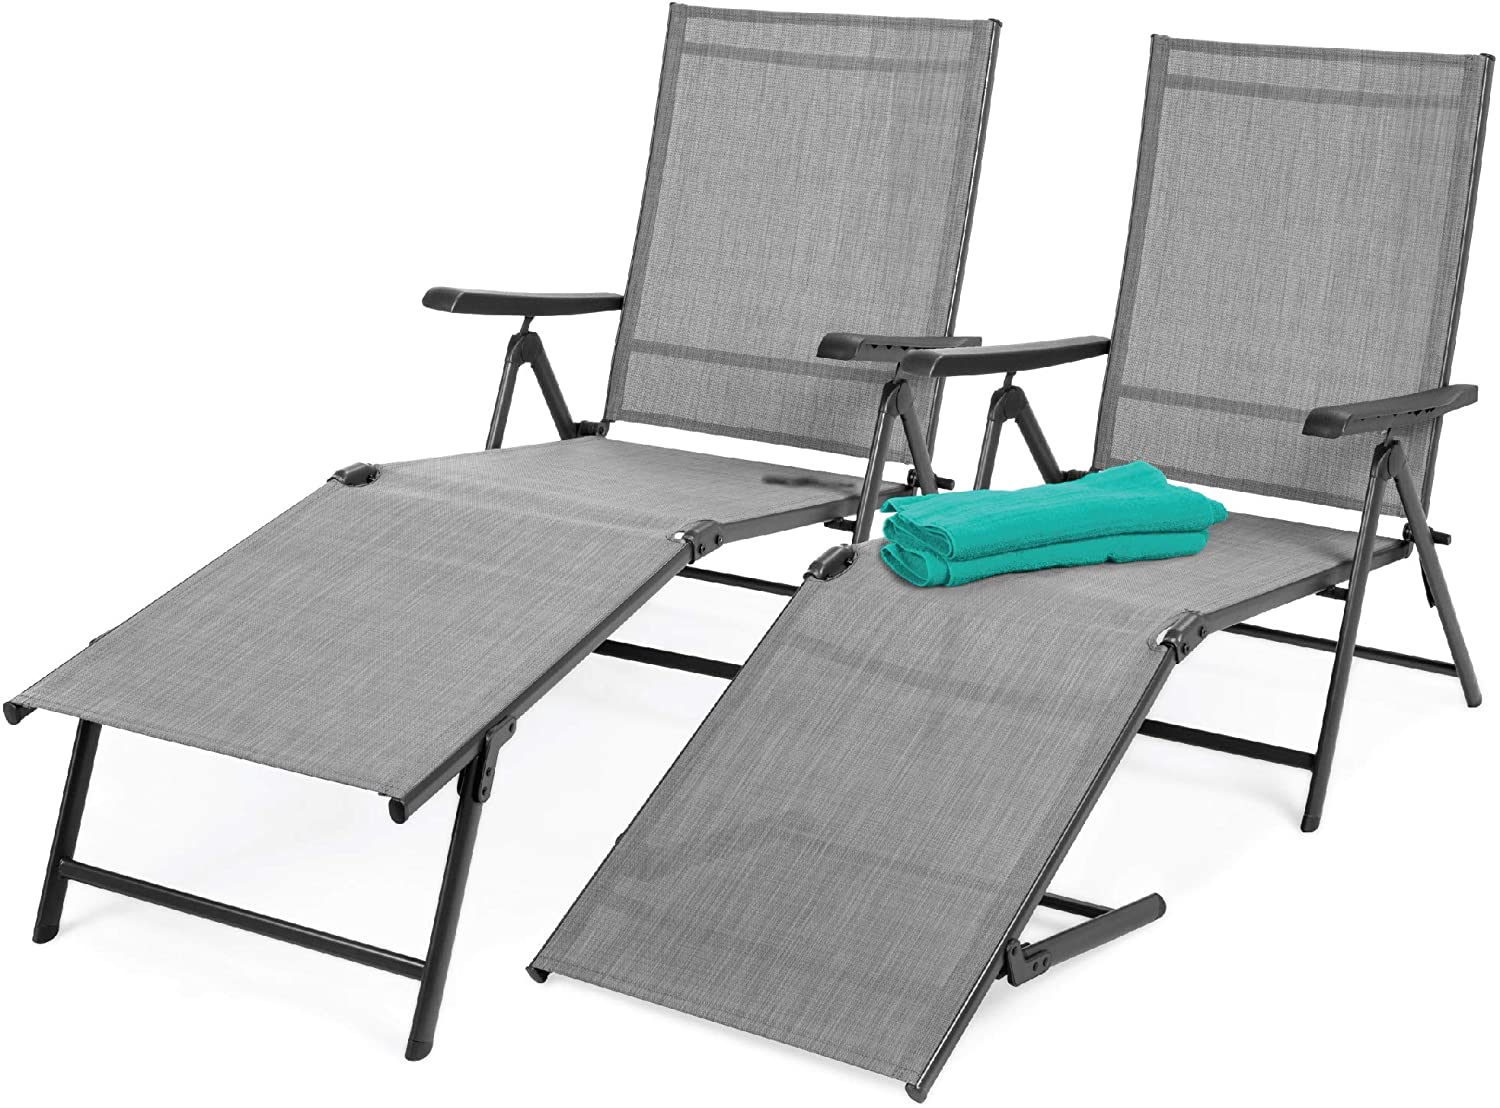 Amazon Com Best Choice Products Set Of 2 Outdoor Adjustable Folding Steel Textiline Chaise Reclining Lounge Chairs W 6 Back 2 Leg Positions Gray Garden Outdoor